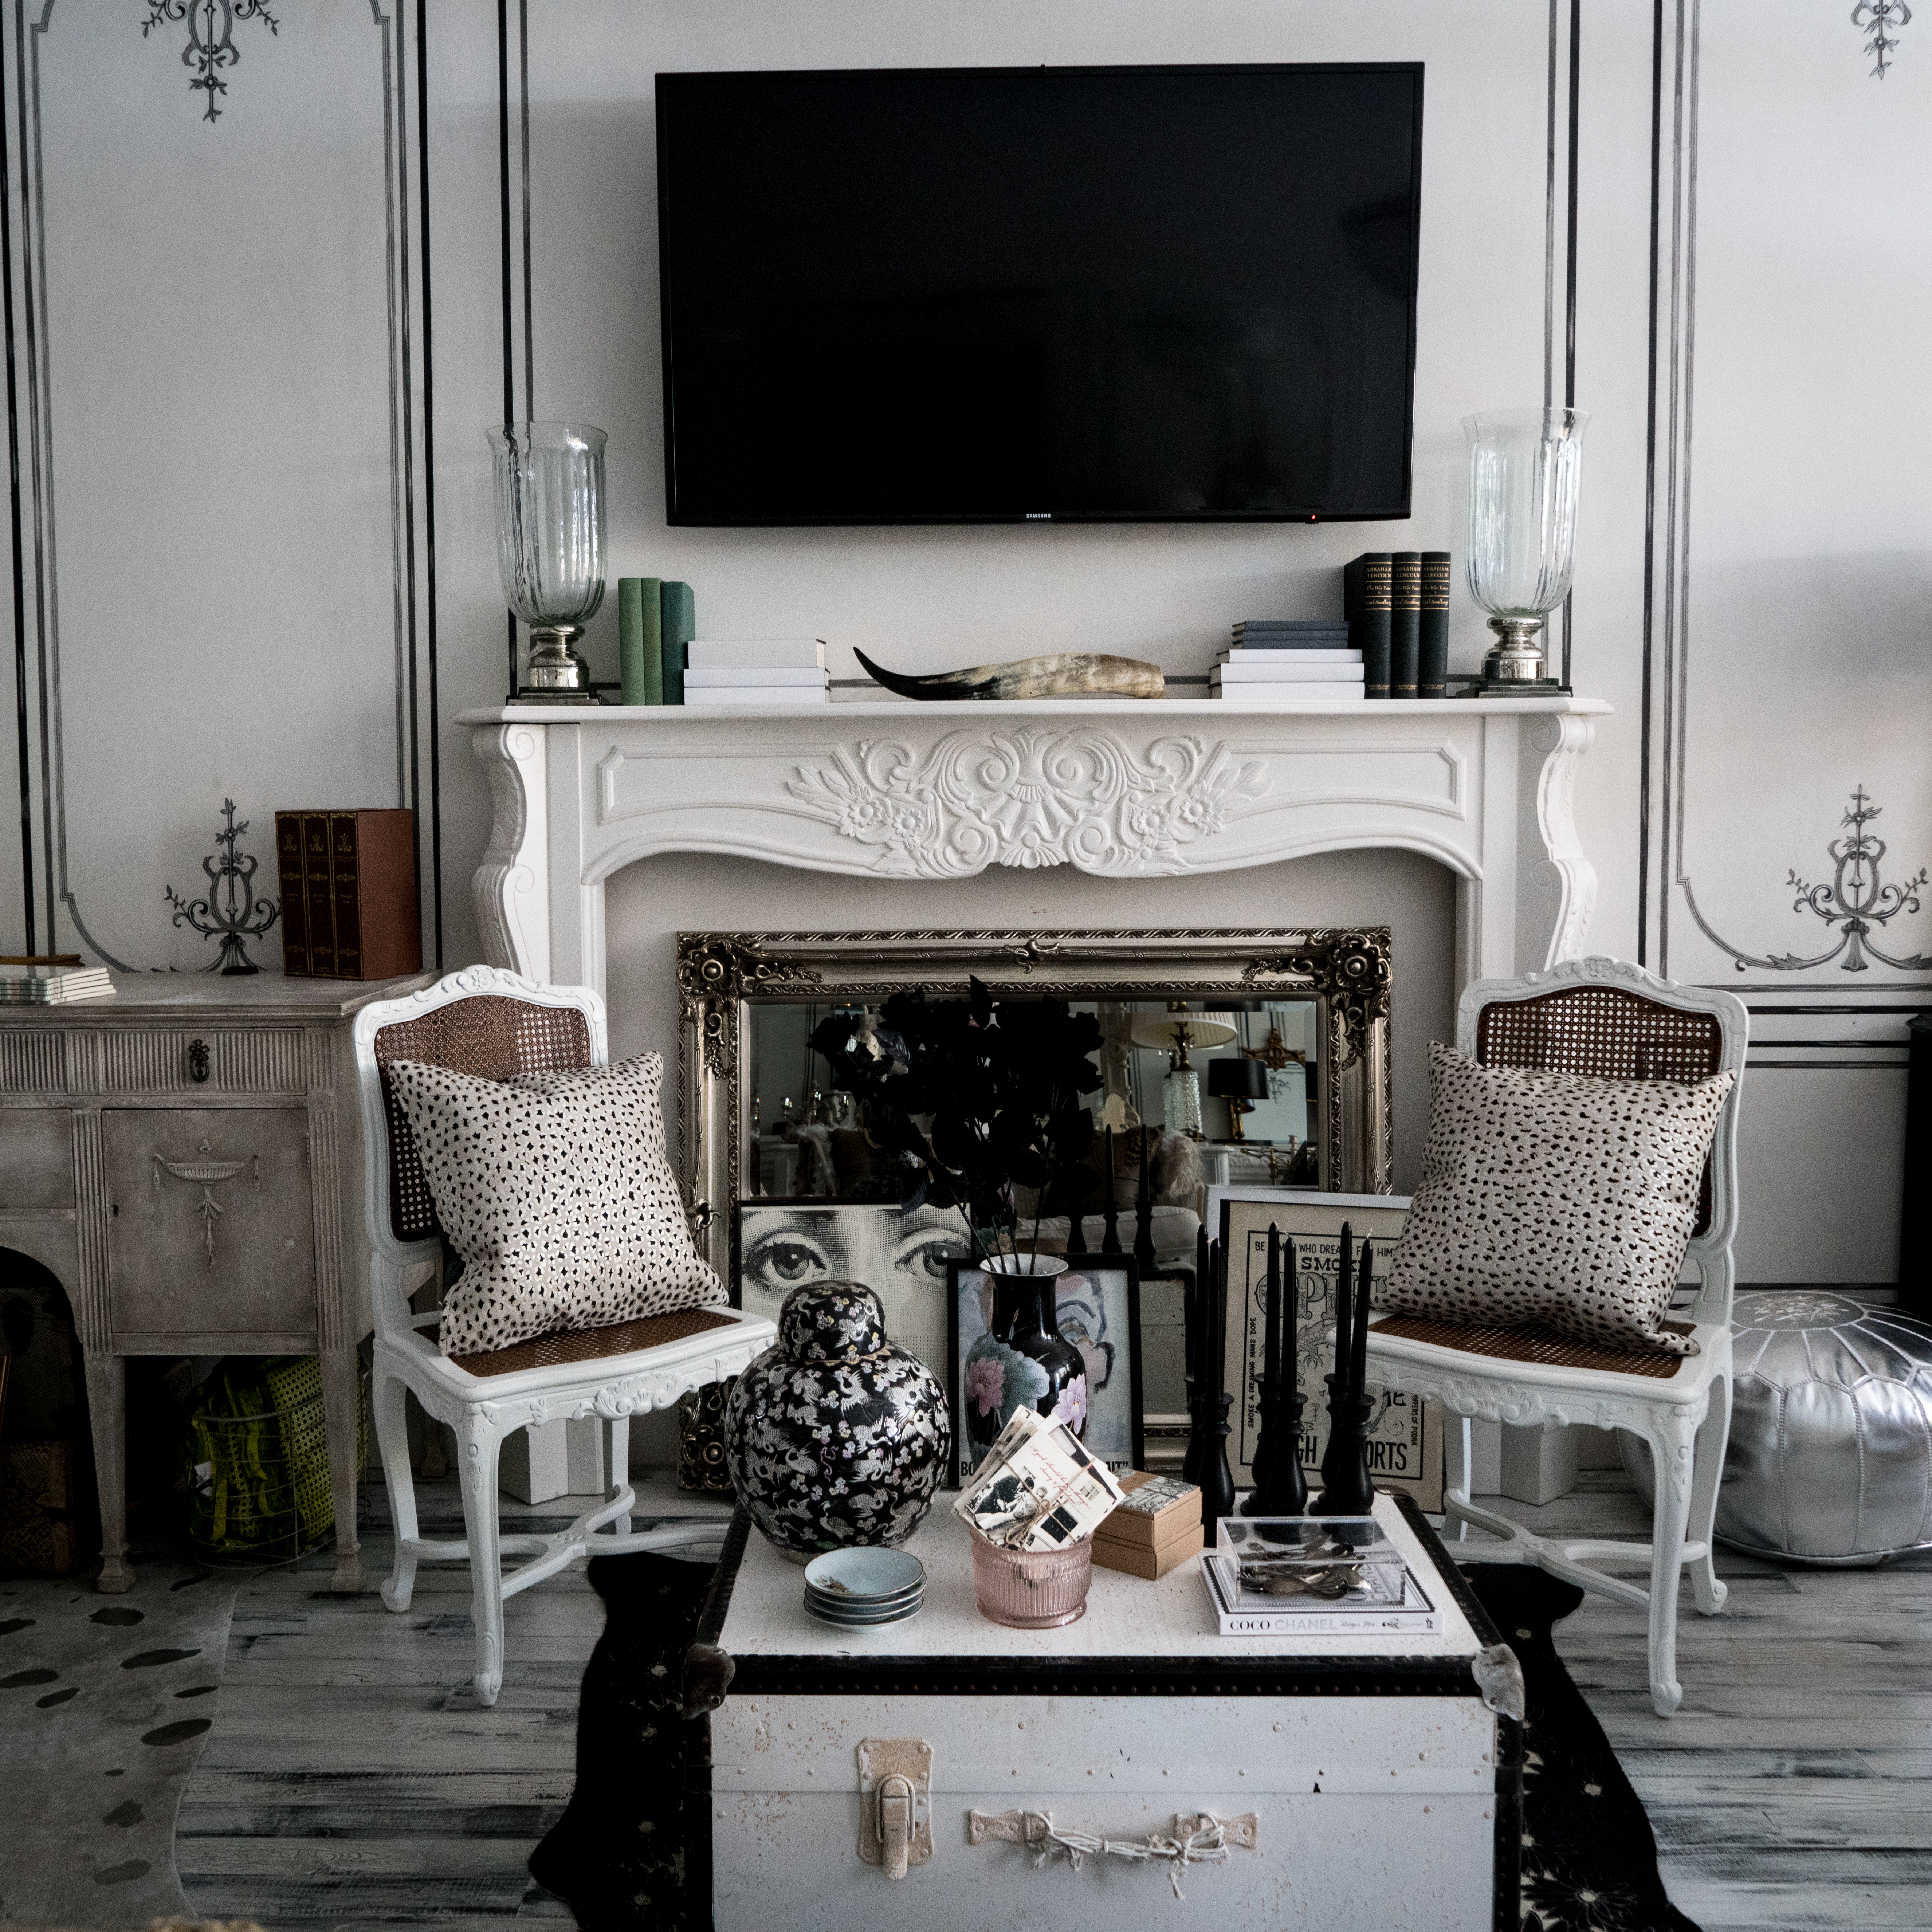 I Wanted To Offer Products And Decor In A Beautiful Home Store Setting, So  That Everyone Could Feel Like They Could Accent Their Home With Something  ...